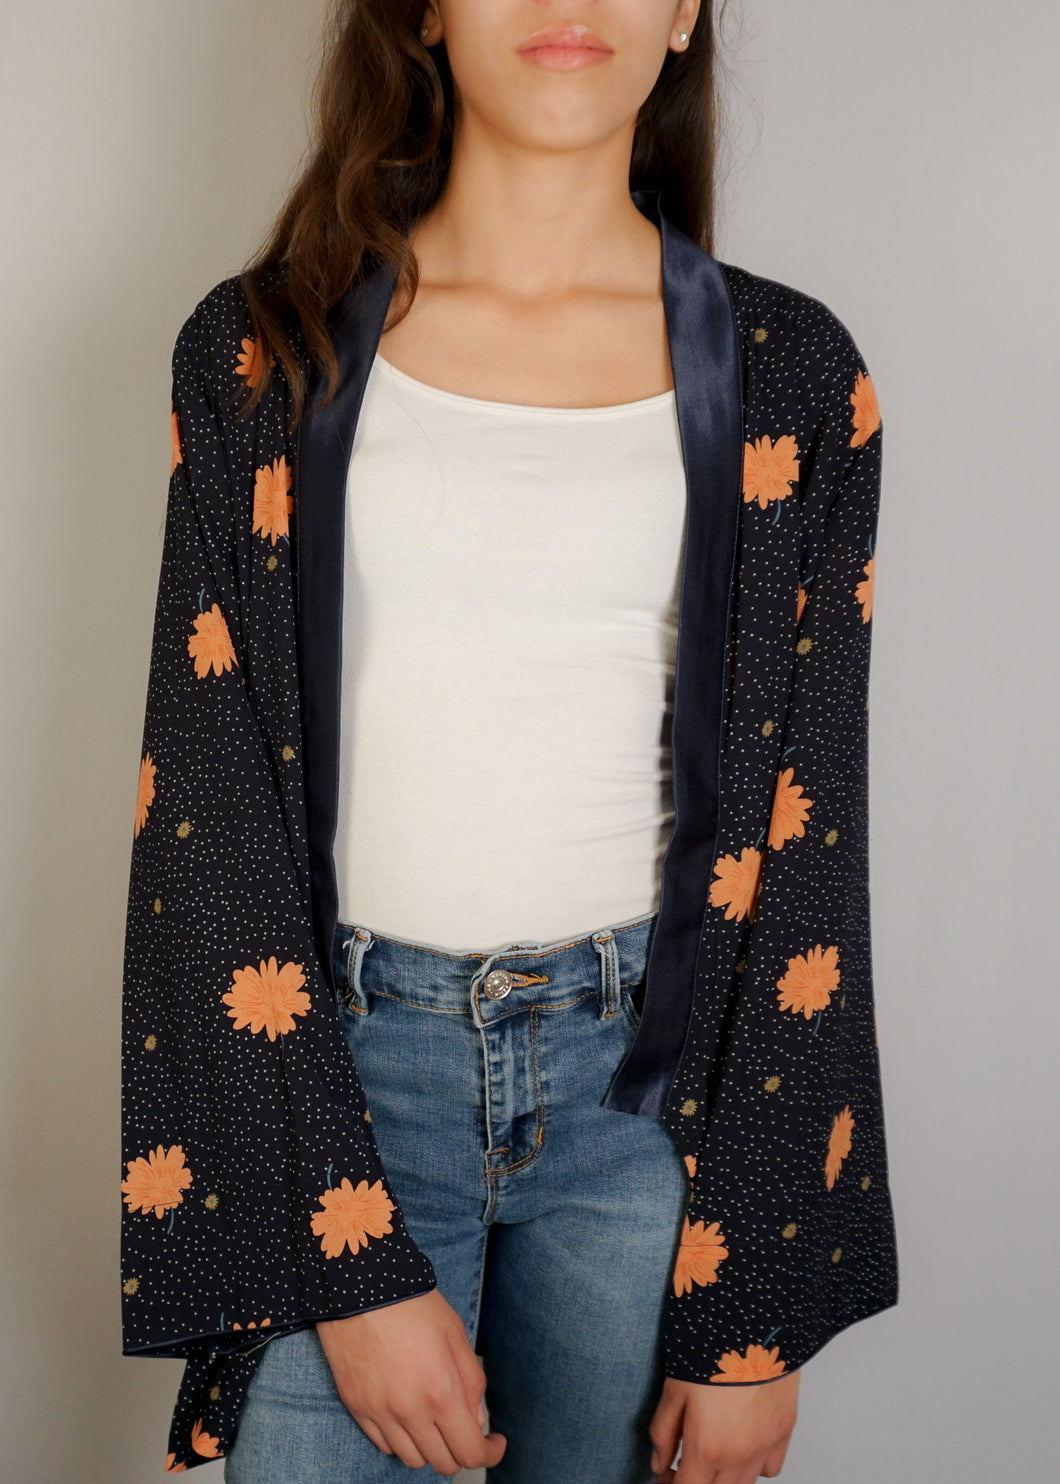 Kimono Cardigan - In Your Space Boutique